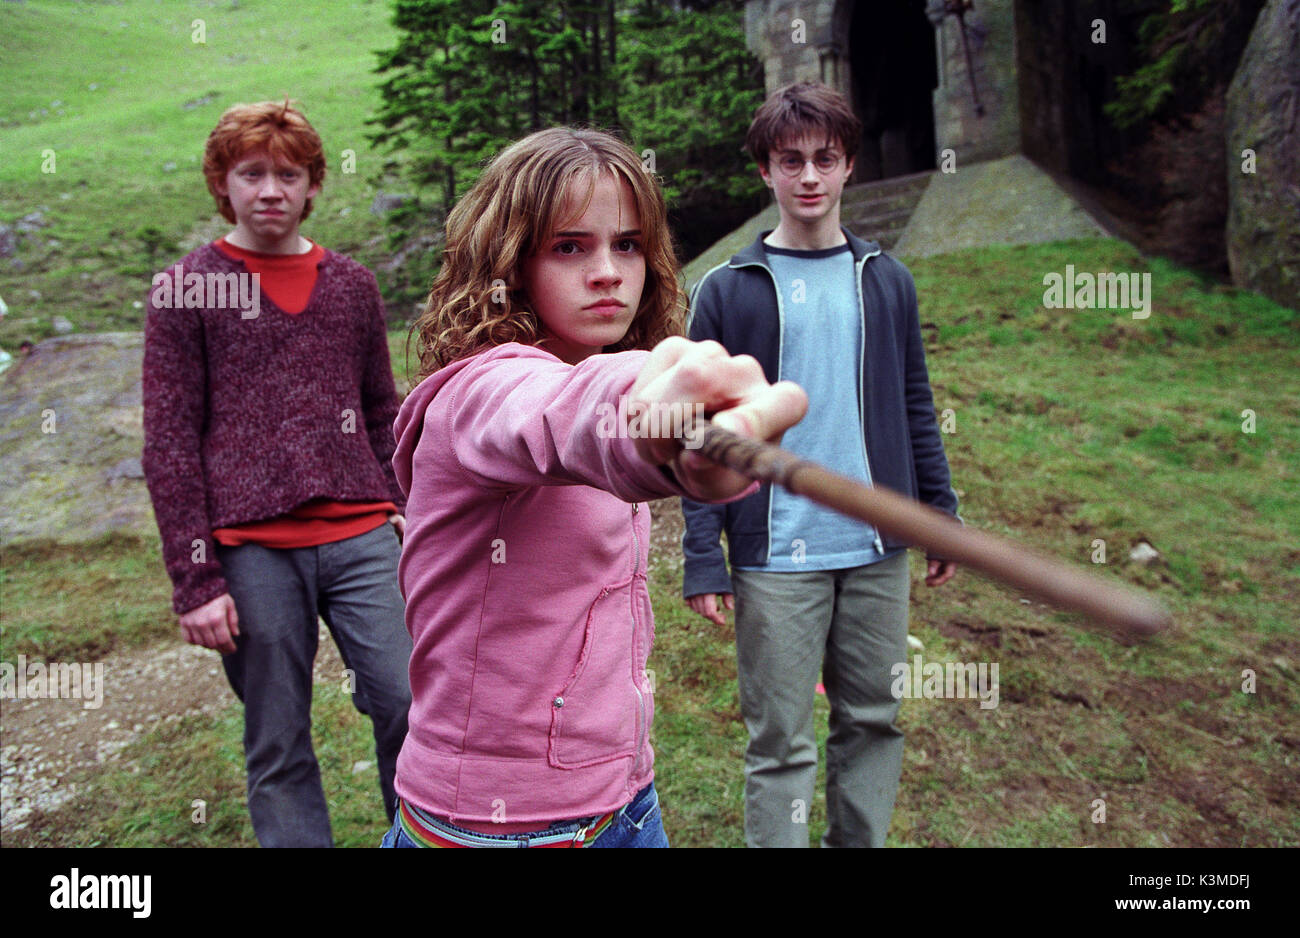 HARRY POTTER AND THE PRISONER OF AZKABAN [BR / US 2004] [L-R] RUPERT GRINT as Ron Weasley, EMMA WATSON as Hermione Granger, DANIEL RADCLIFFE as Harry Potter     Date: 2004 - Stock Image